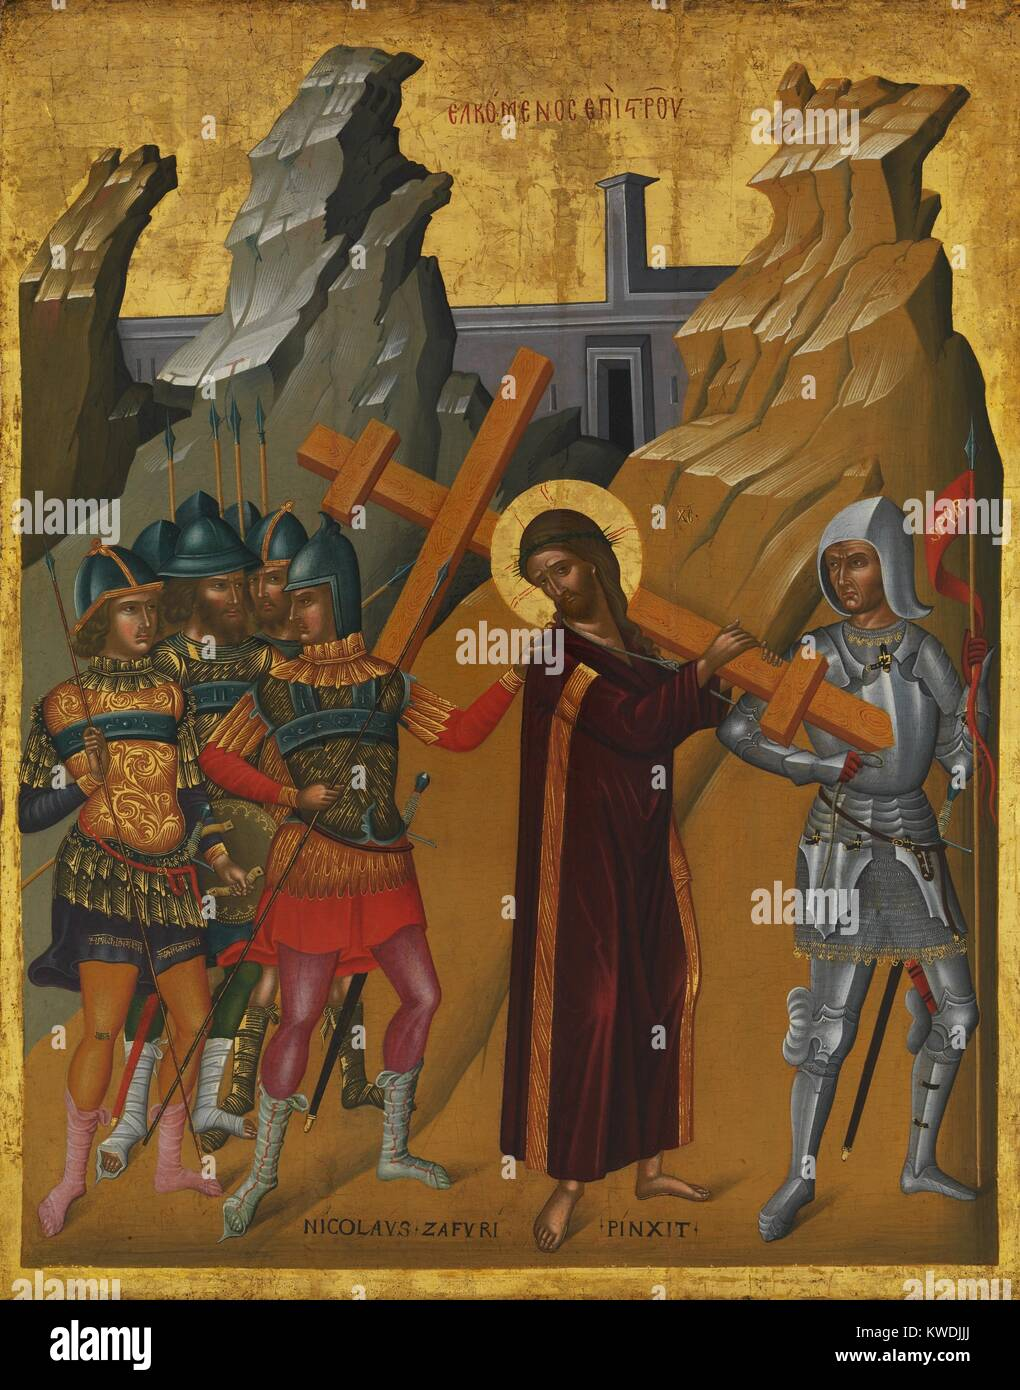 CHRIST BEARING THE CROSS, by Nicolaos Tzafouris, 1475-99, Byzantine, Cretan oil painting. Surrounded by soldiers, - Stock Image